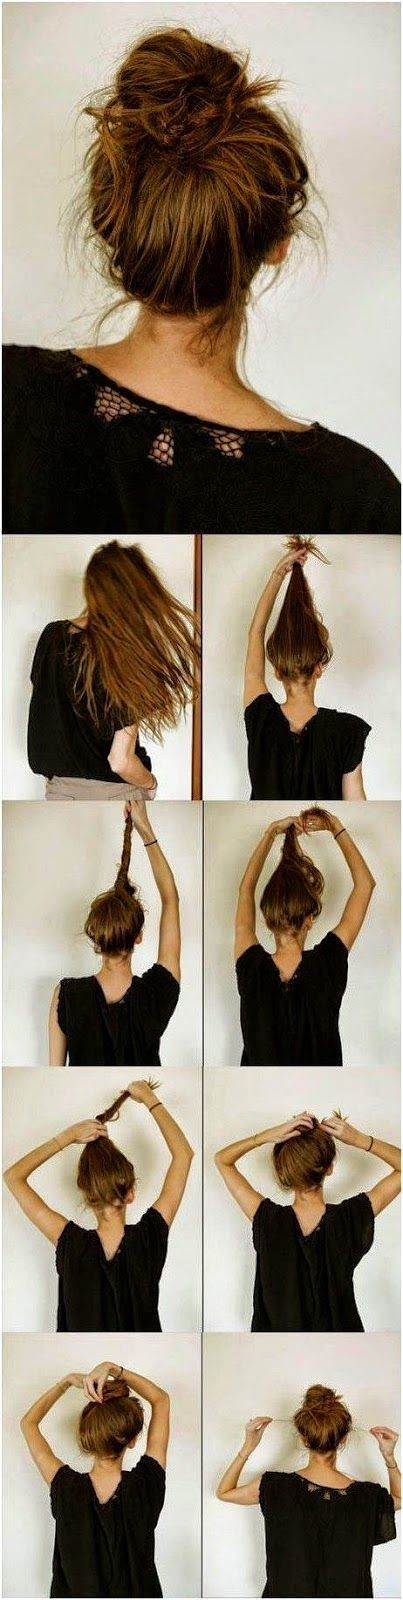 How To Wear A Messy Bun With Tutorials Hairstyles Weekly